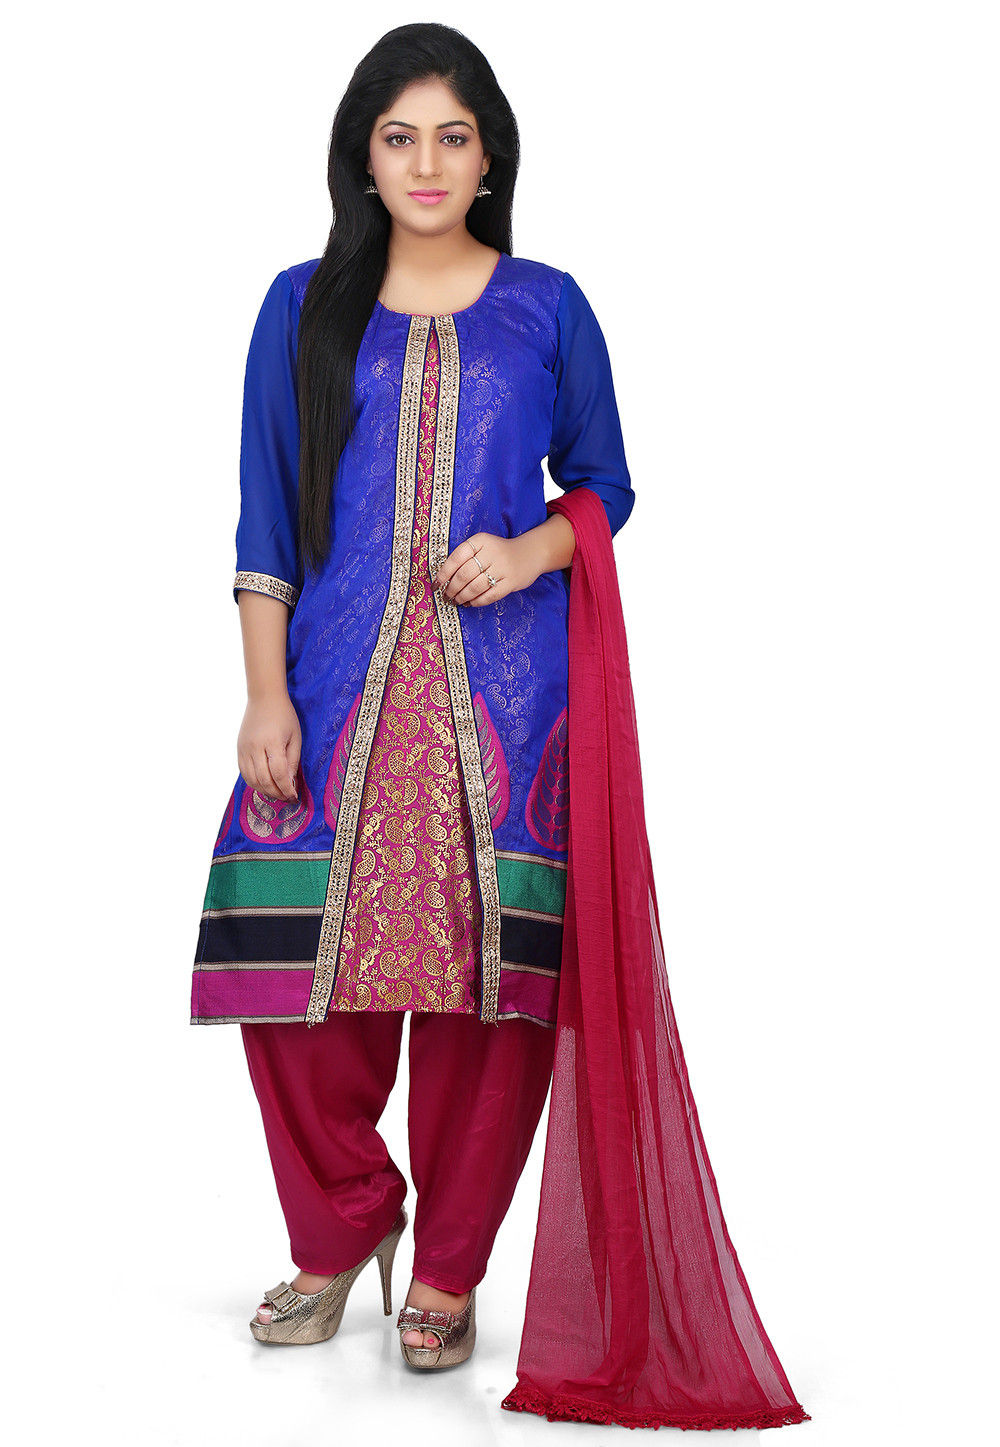 Printed Chanderi Jacket Style Suit in Royal Blue and Fuchsia